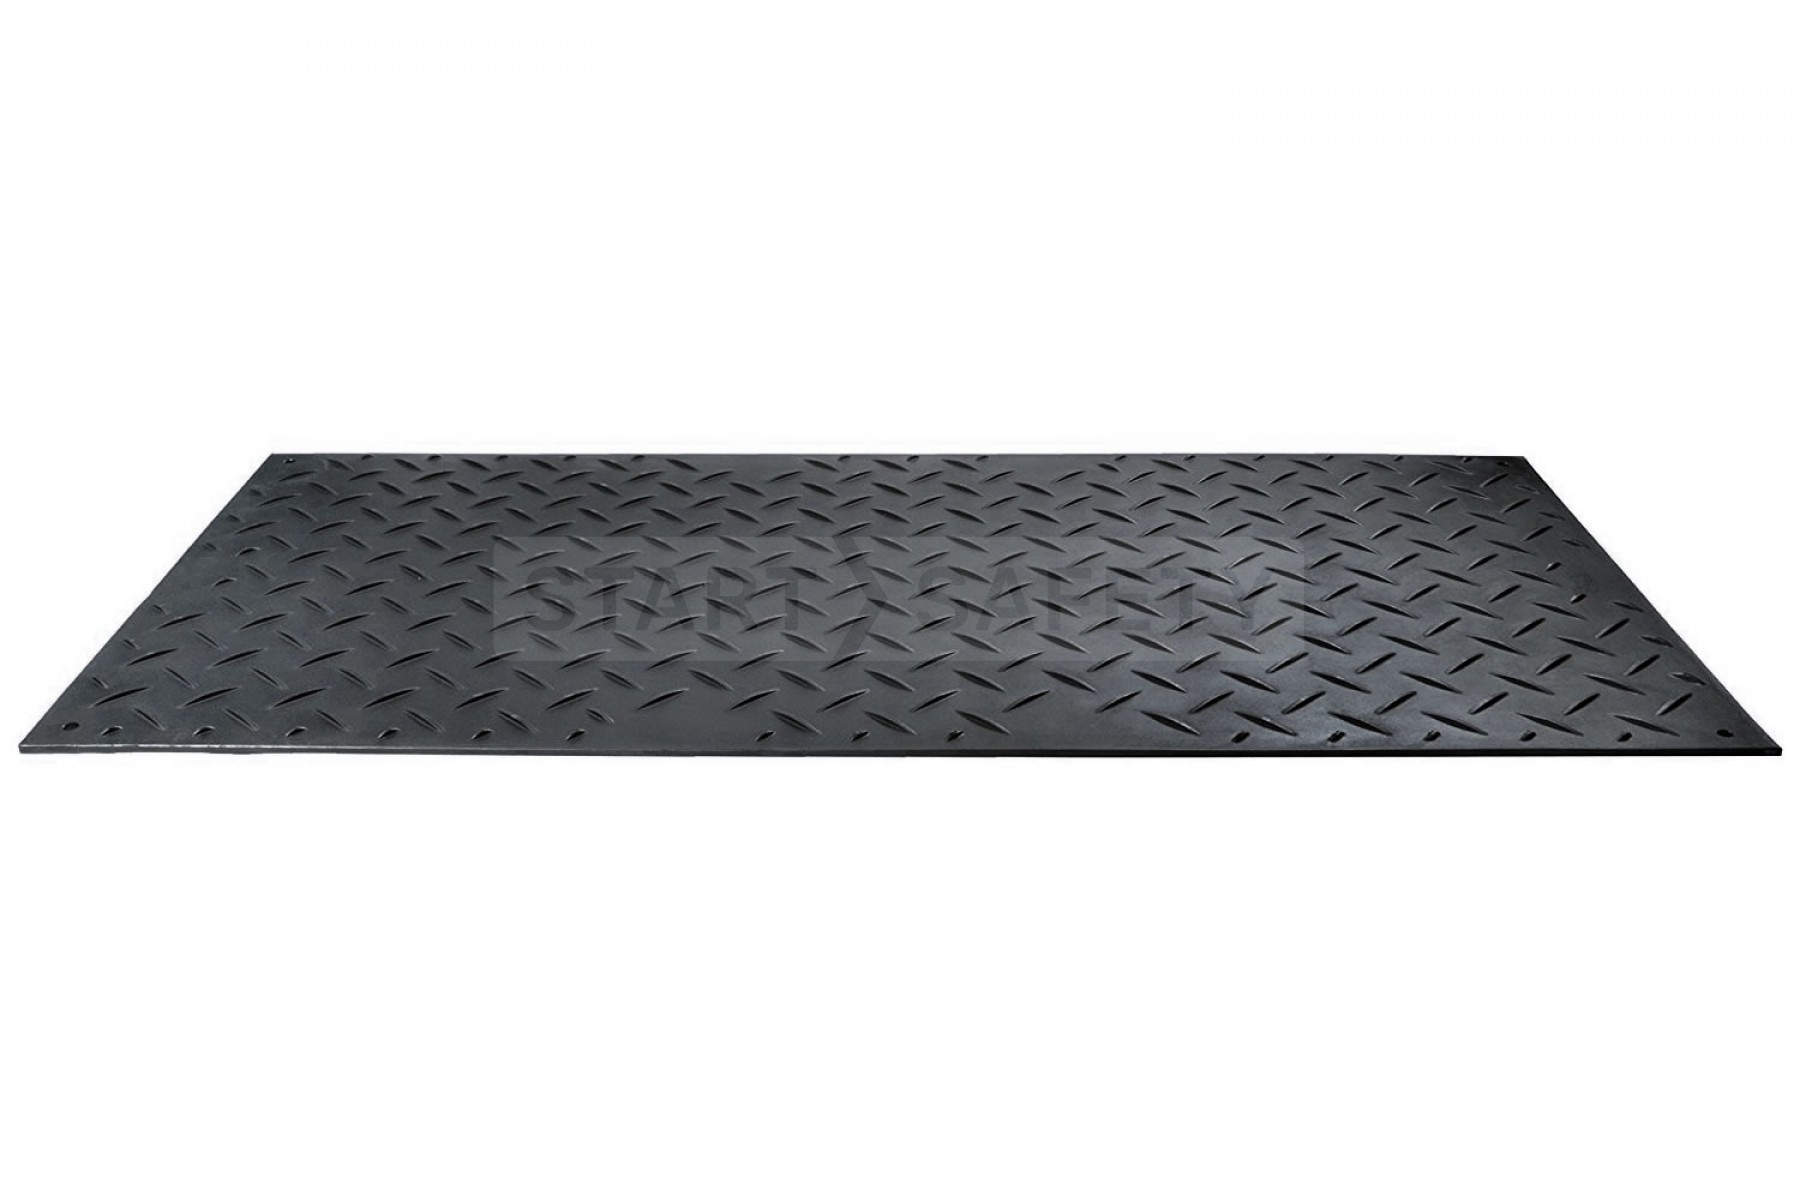 Ground Protection Mats. Rugged panels for temporary vehicle access roads over grass or mud. Buy from £85 each. Hire Ground Mats. Save money by hiring ground.